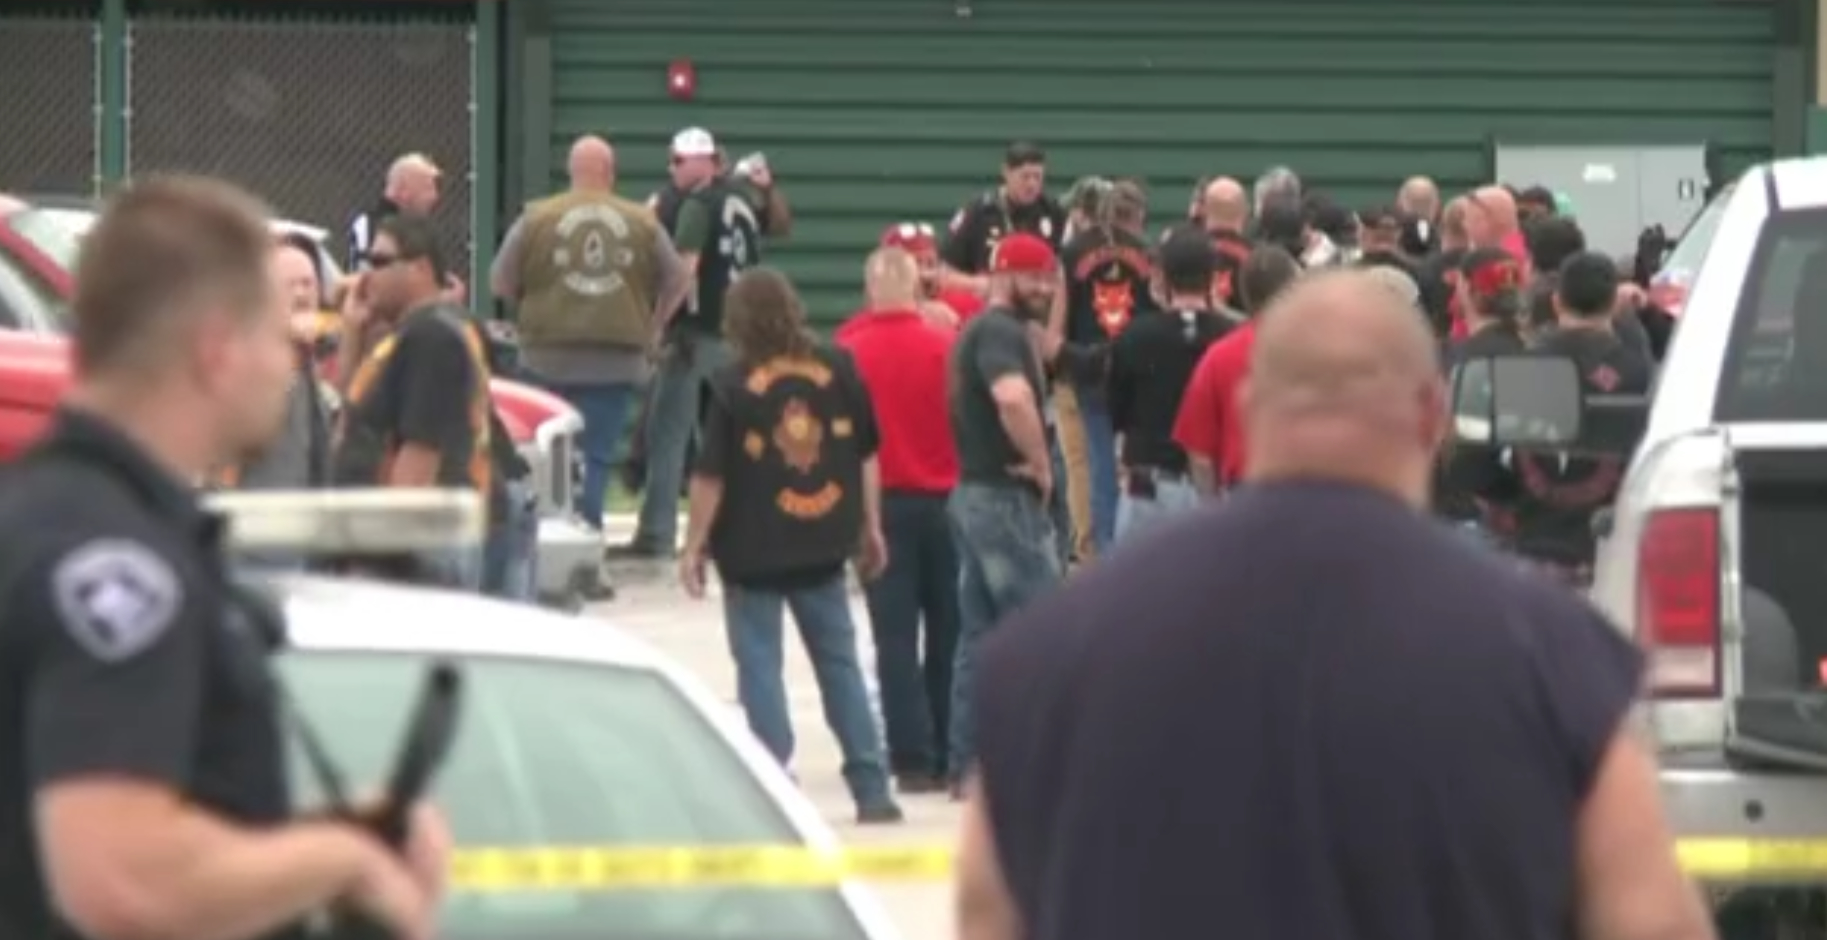 A screengrab from KWTX shows the scene of a shooting in Waco that left at least 9 dead. (KWTX)